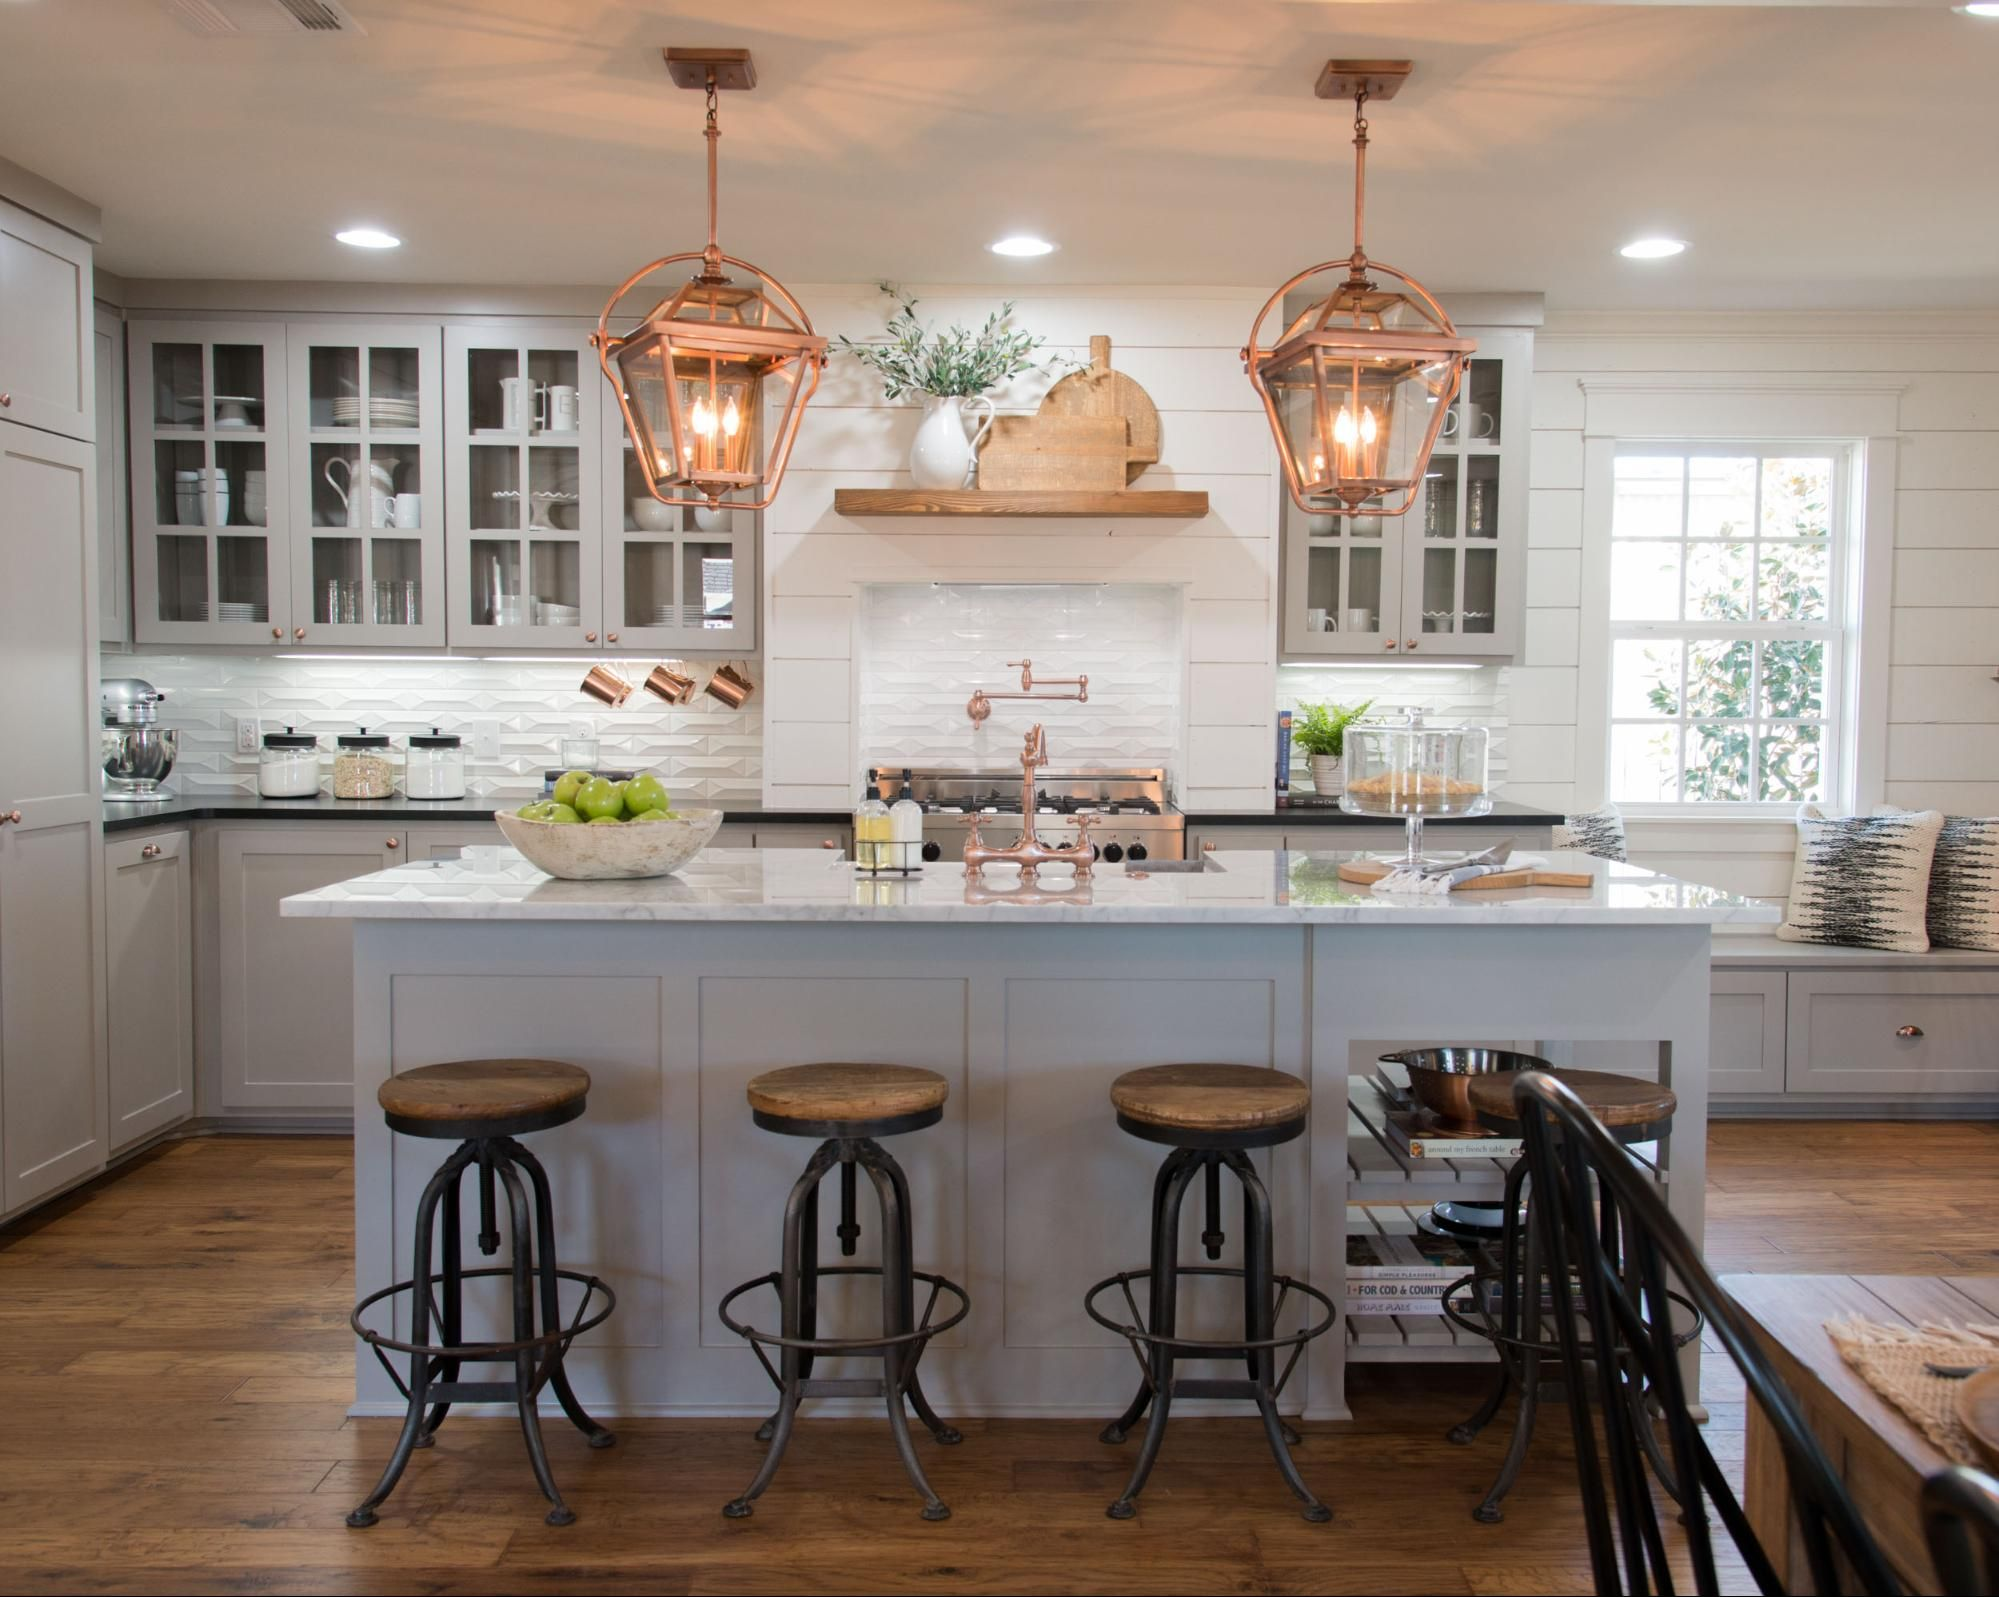 House Kitchen Magnolia Farms Fixer Upper Cottage House Cottage House Kitchen